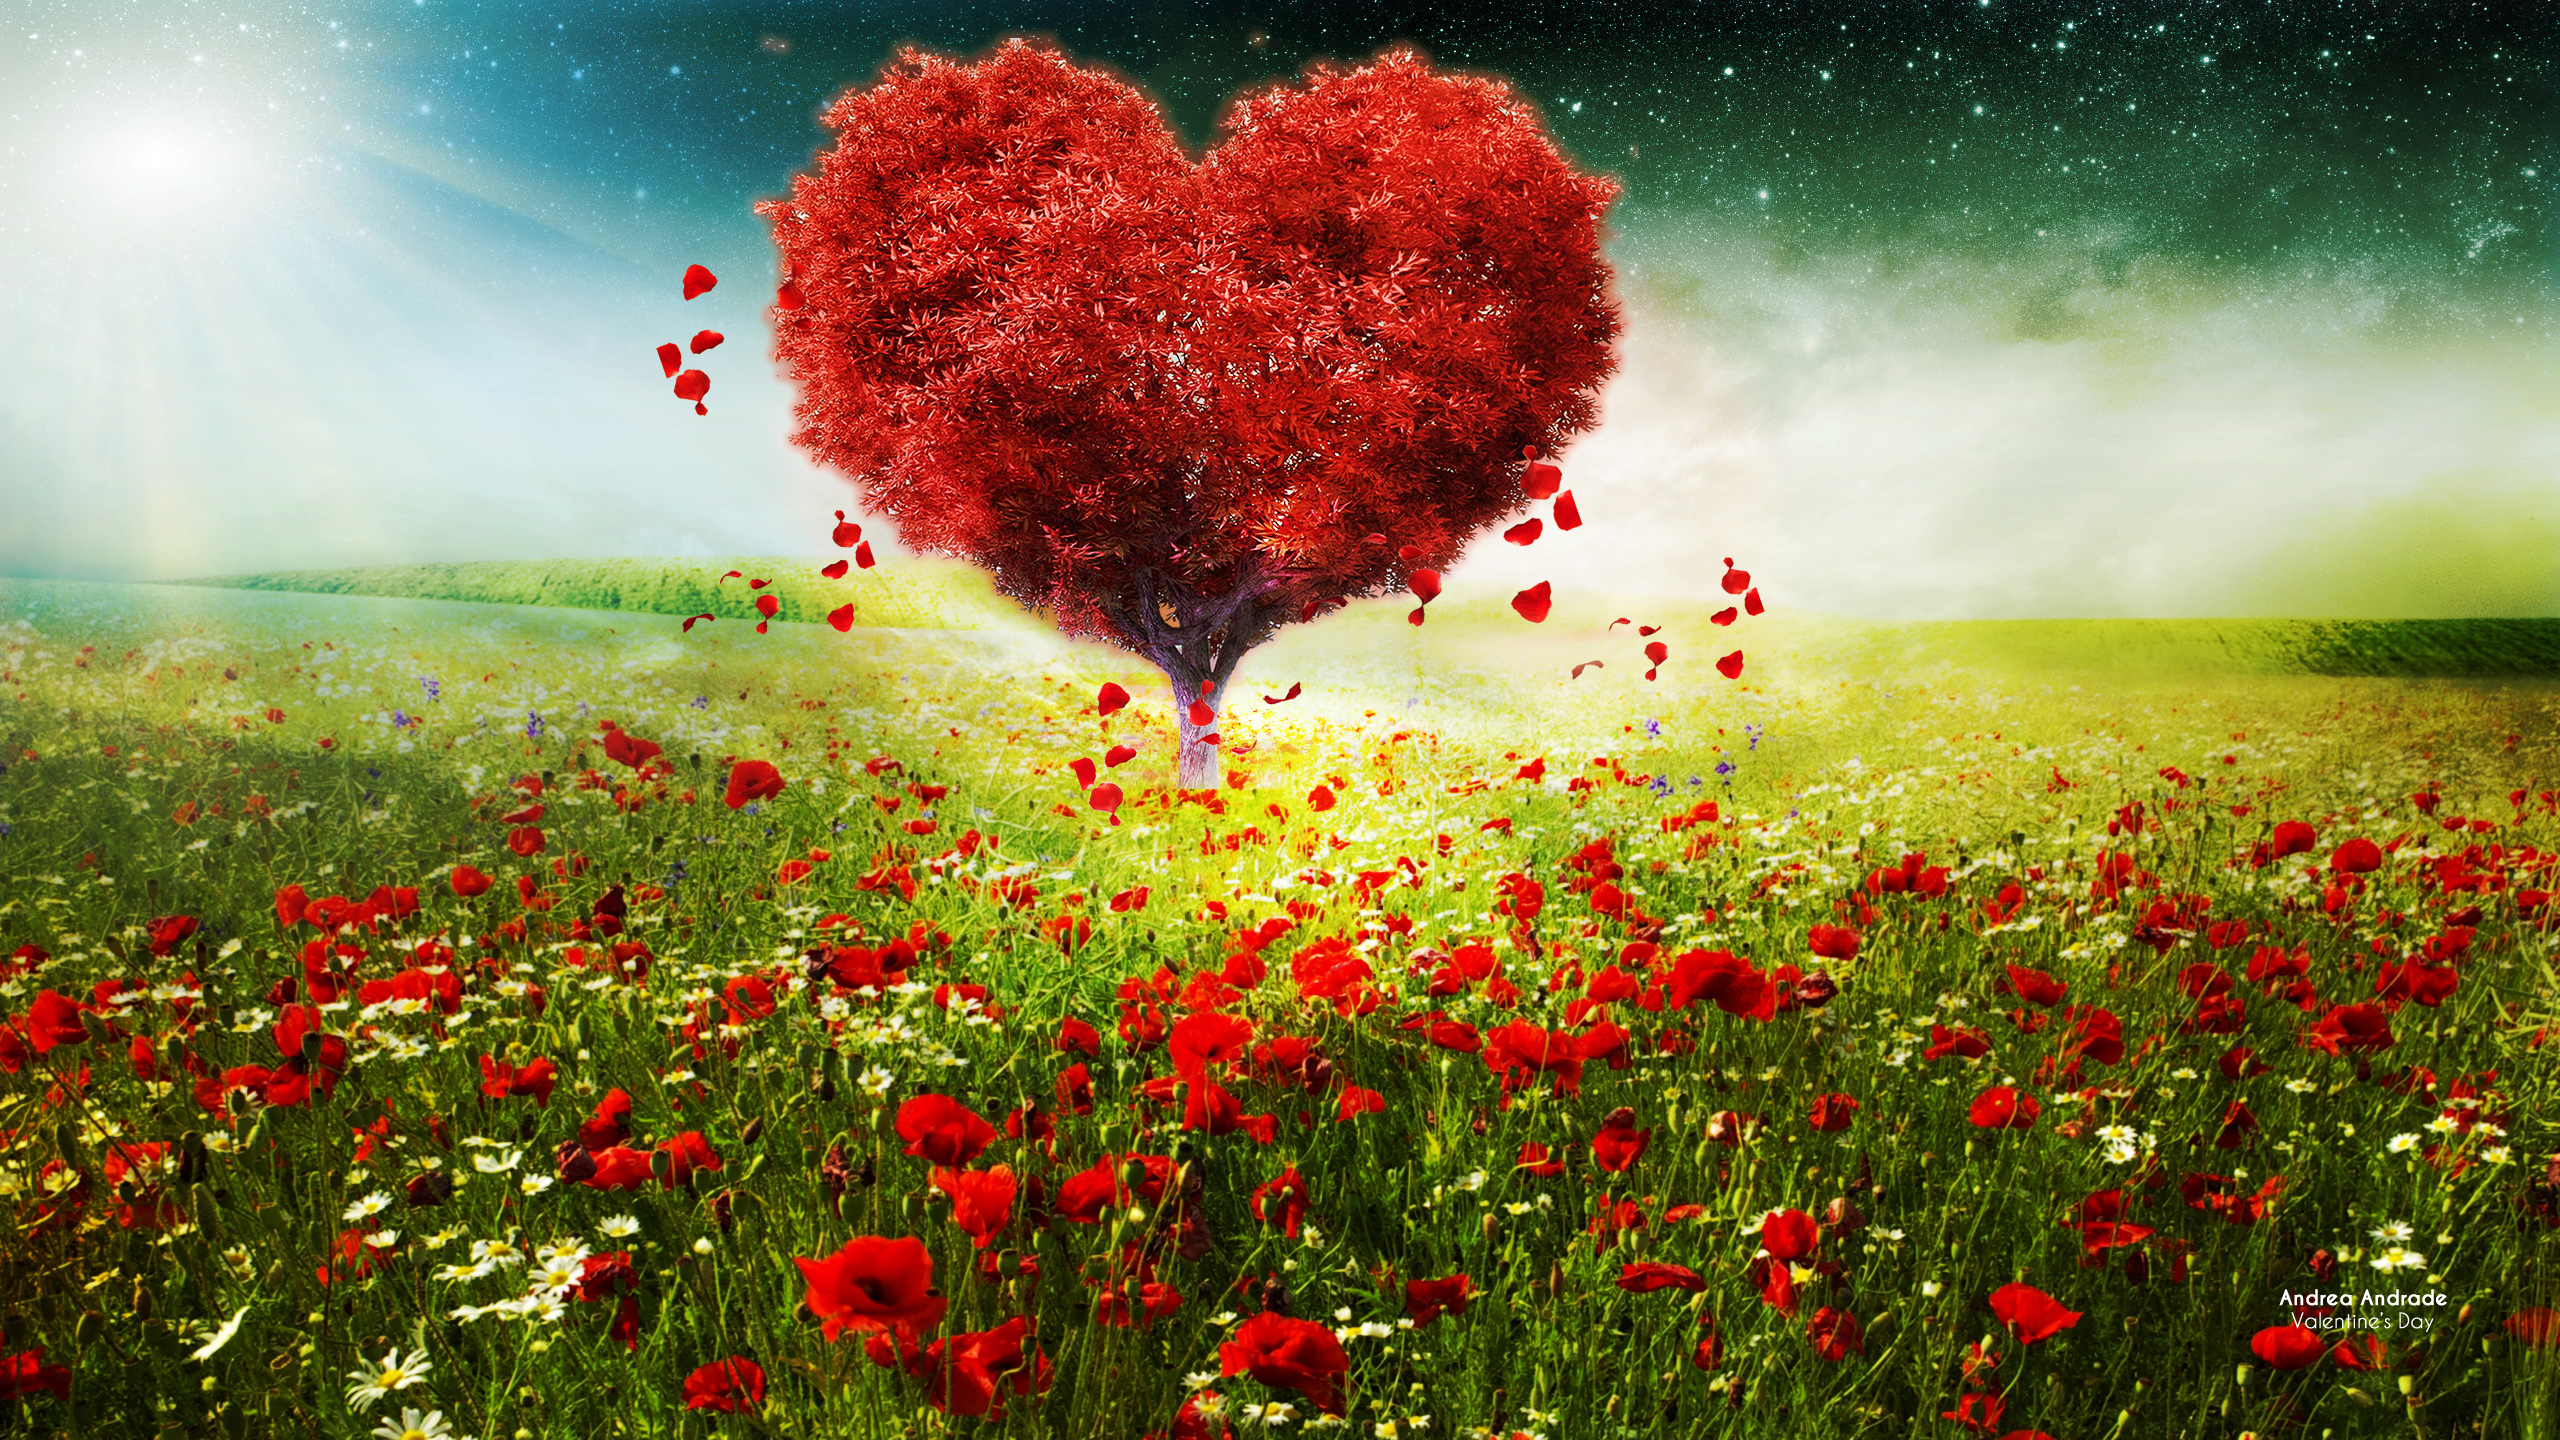 Wallpaper 4k Valentines Day Love Heart Tree Landscape Hd Day Heart